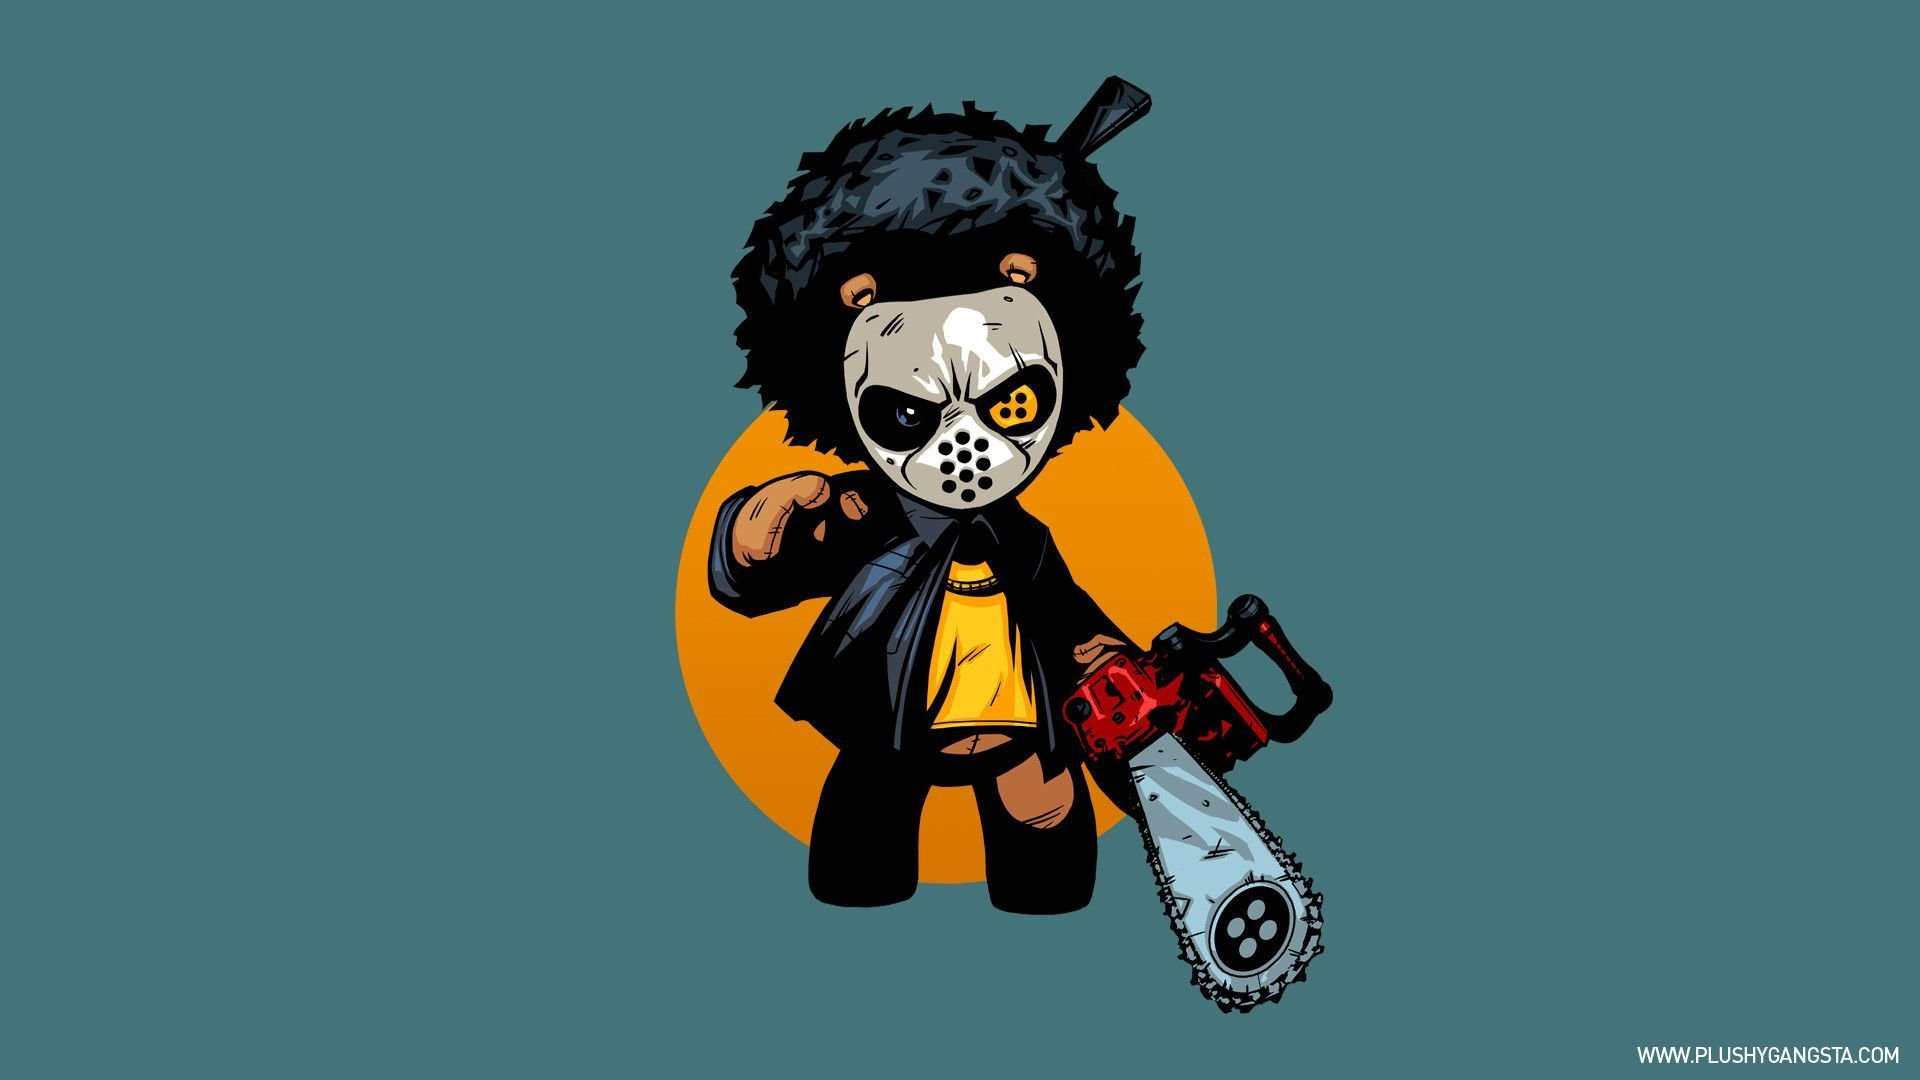 Gangster Cartoon Wallpapers Top Free Gangster Cartoon Backgrounds